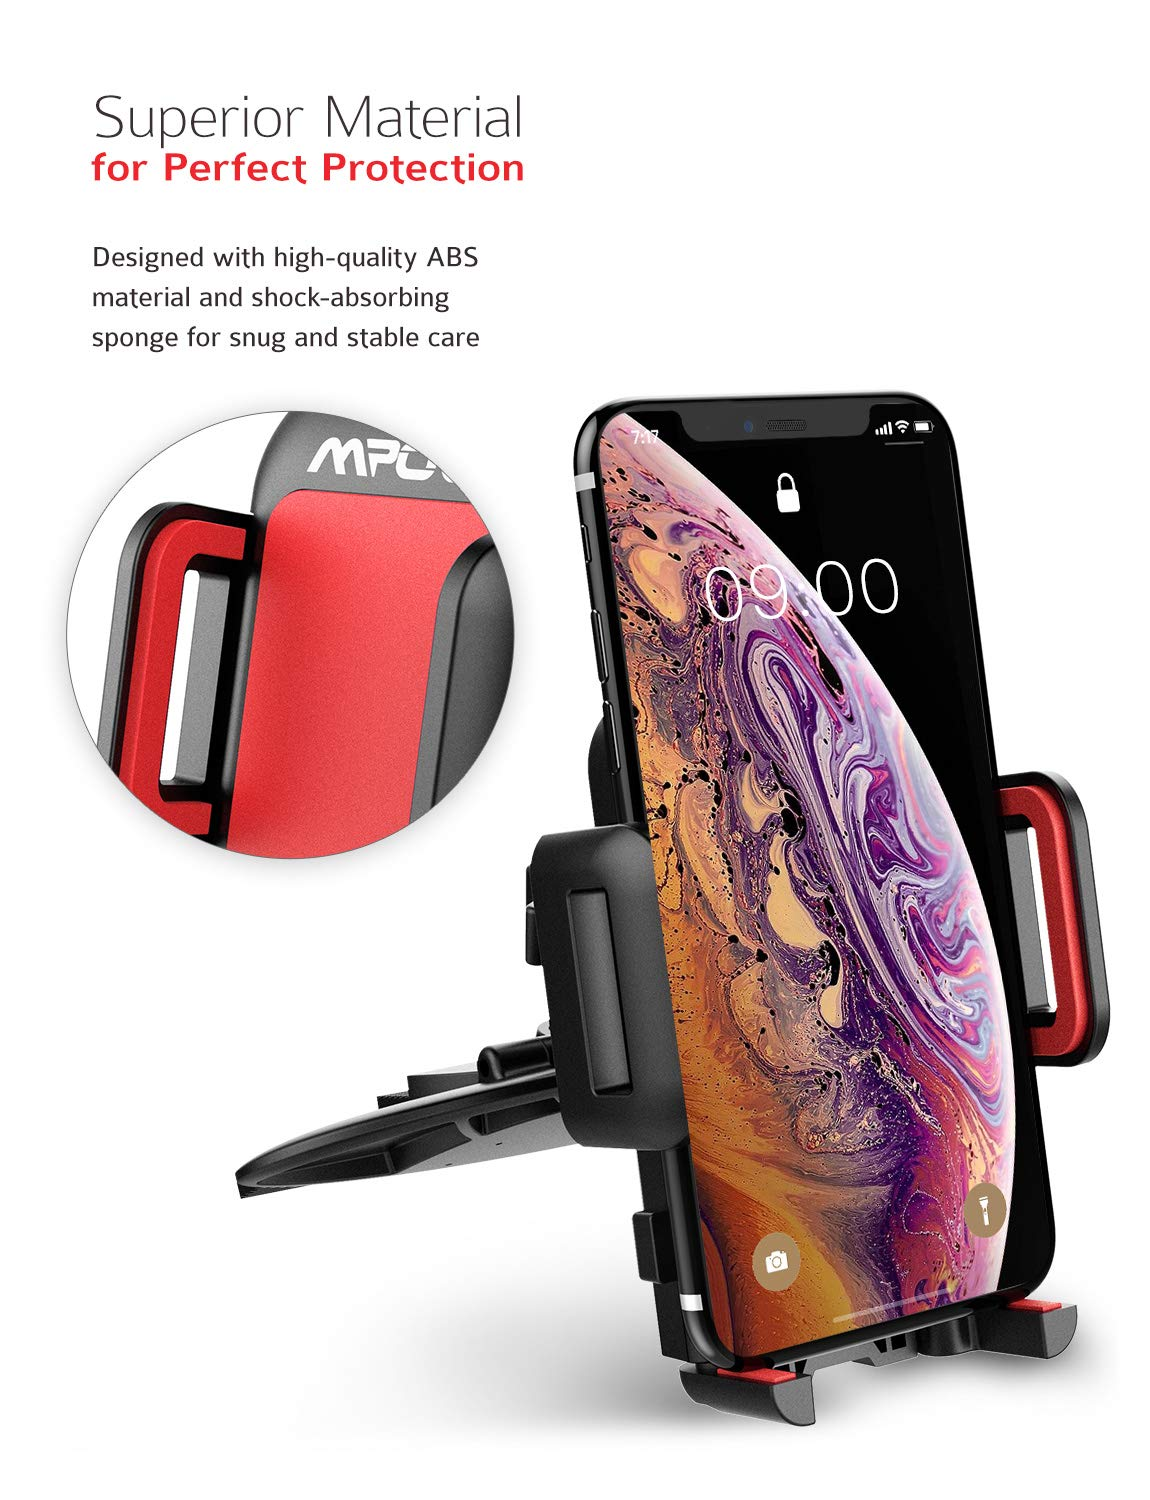 Mpow 051 Car Phone Mount, CD Slot Car Phone Holder, Car Mount with Three-Side Grips and One-Touch Design Compatible iPhone Xs MAX/XR/XS/X/8/8Plus, Galaxy S10/S10+/S10e/S9/S9+/N9/S8, Google, Huawei etc by Mpow (Image #2)